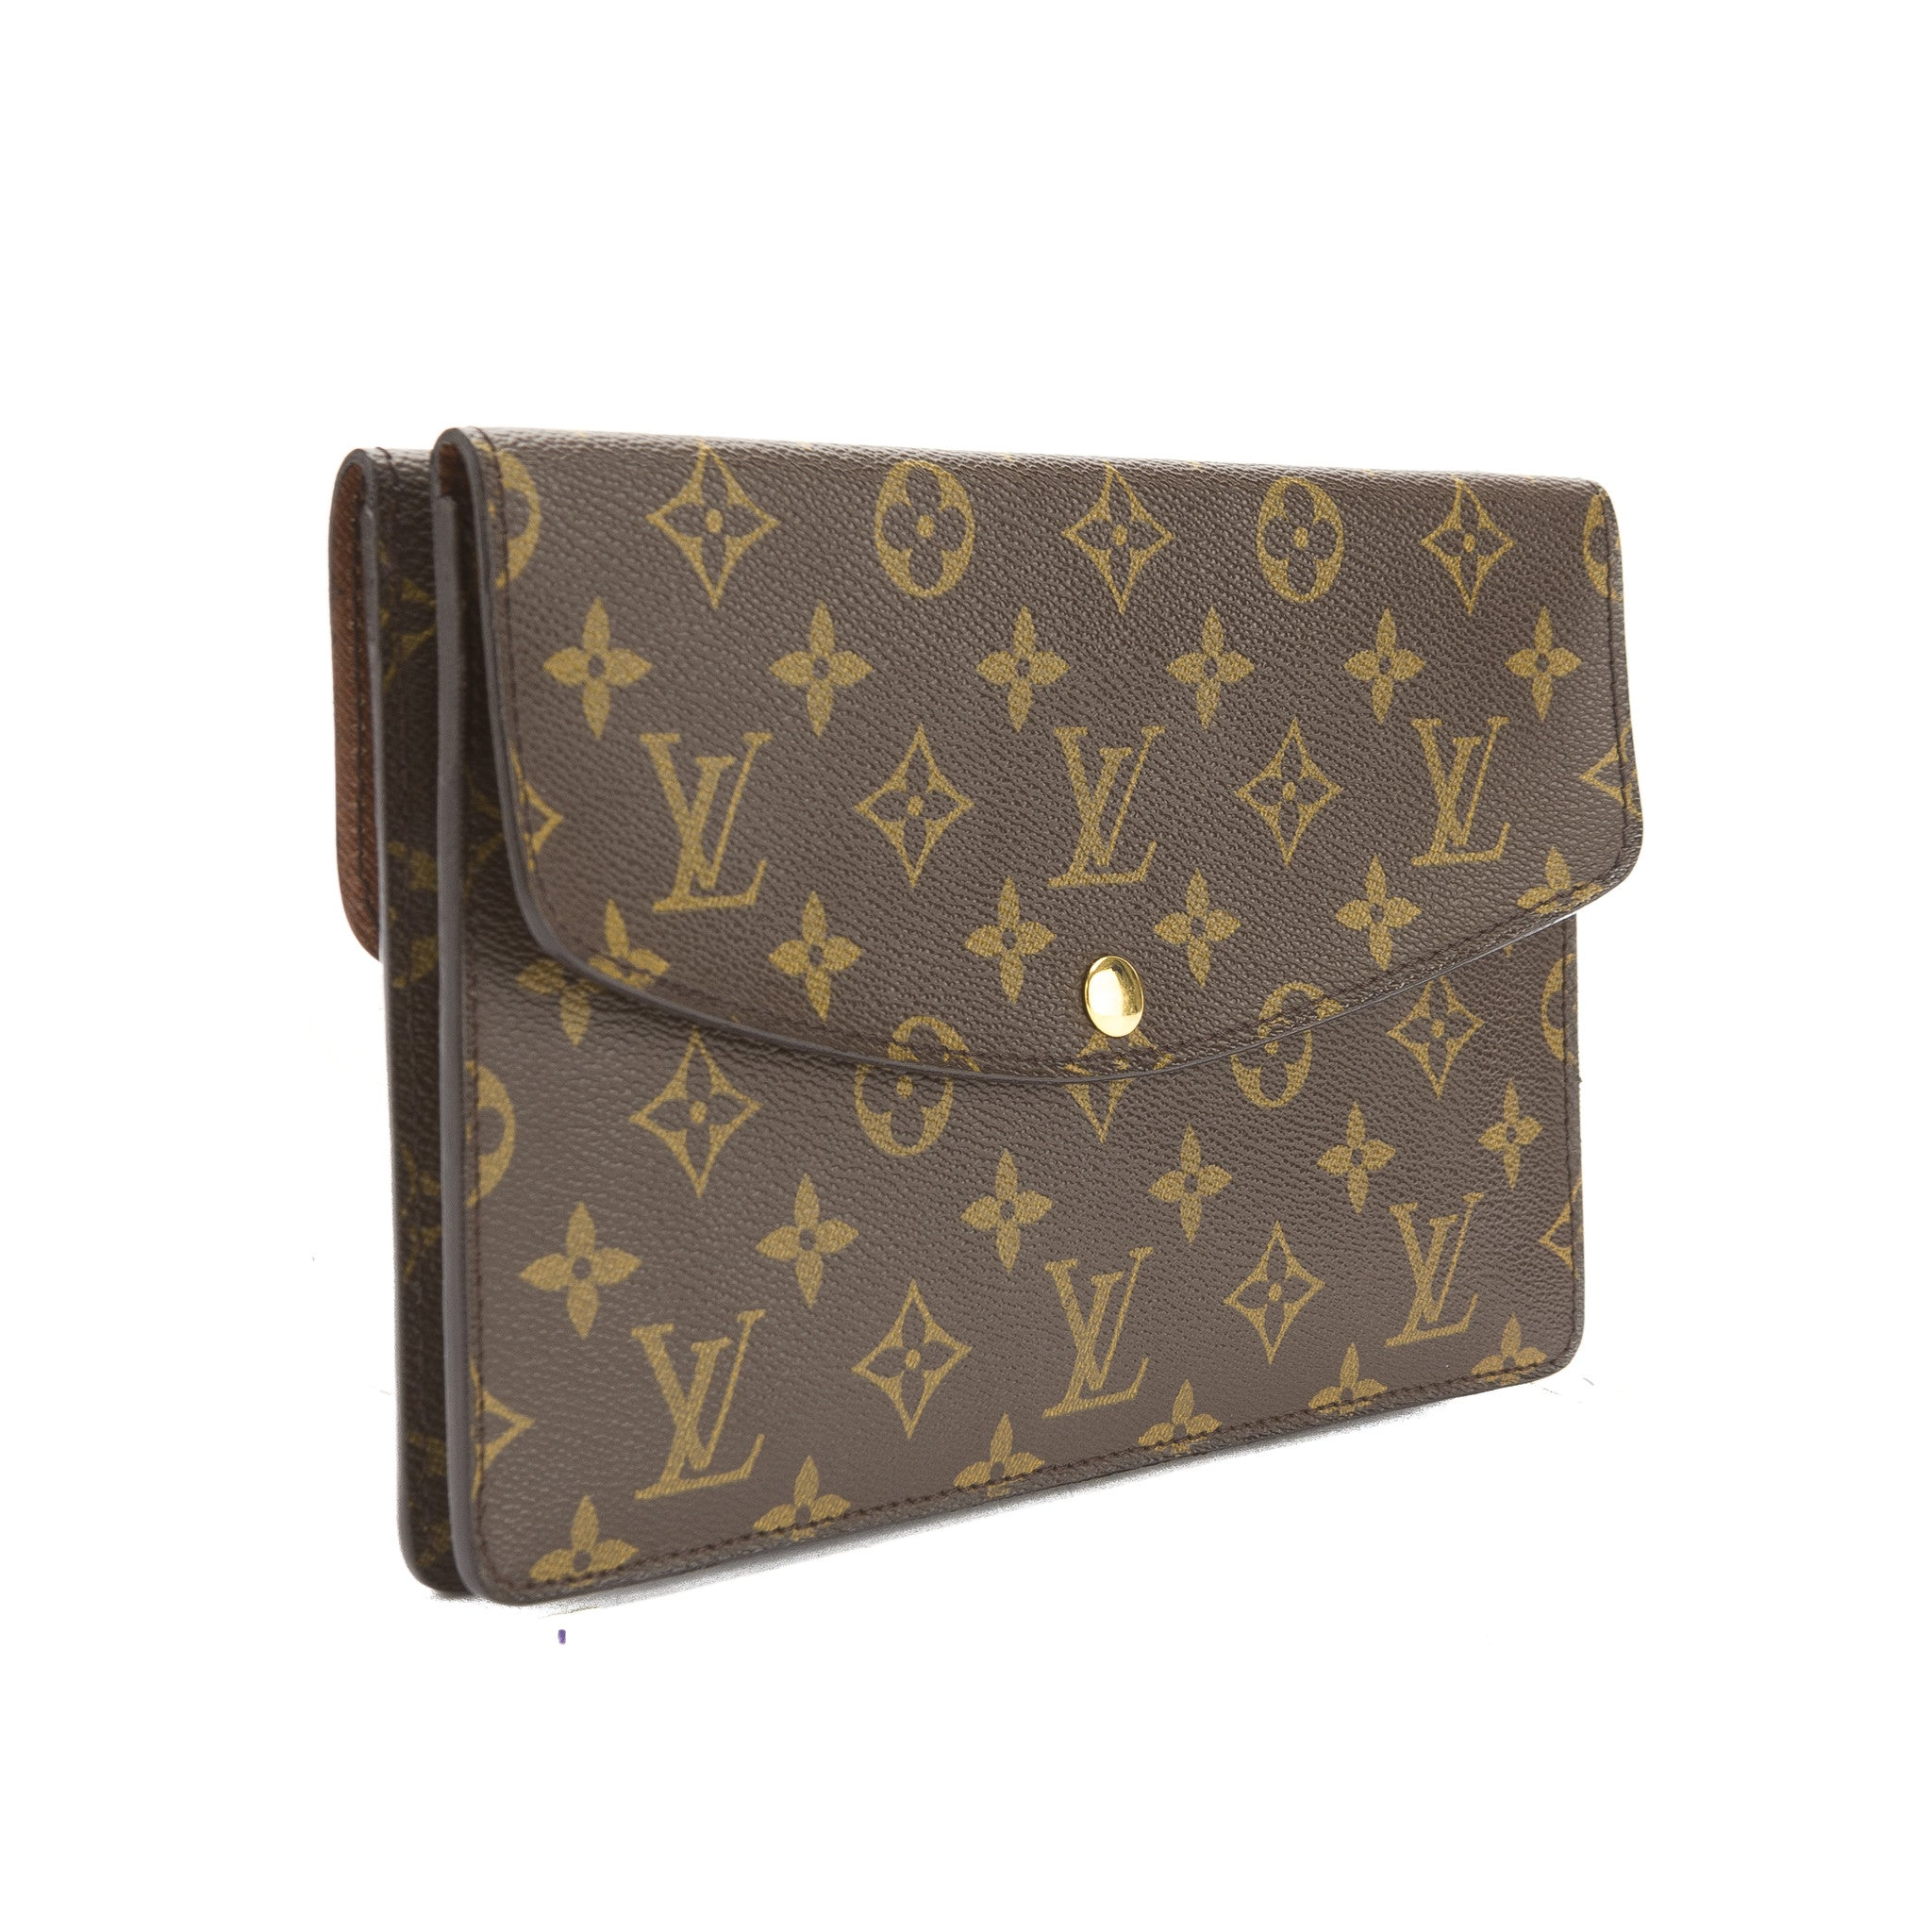 de60b6ef0b1a Louis Vuitton Monogram Double Pochette Rabat Clutch Bag (Pre Owned) -  3277008